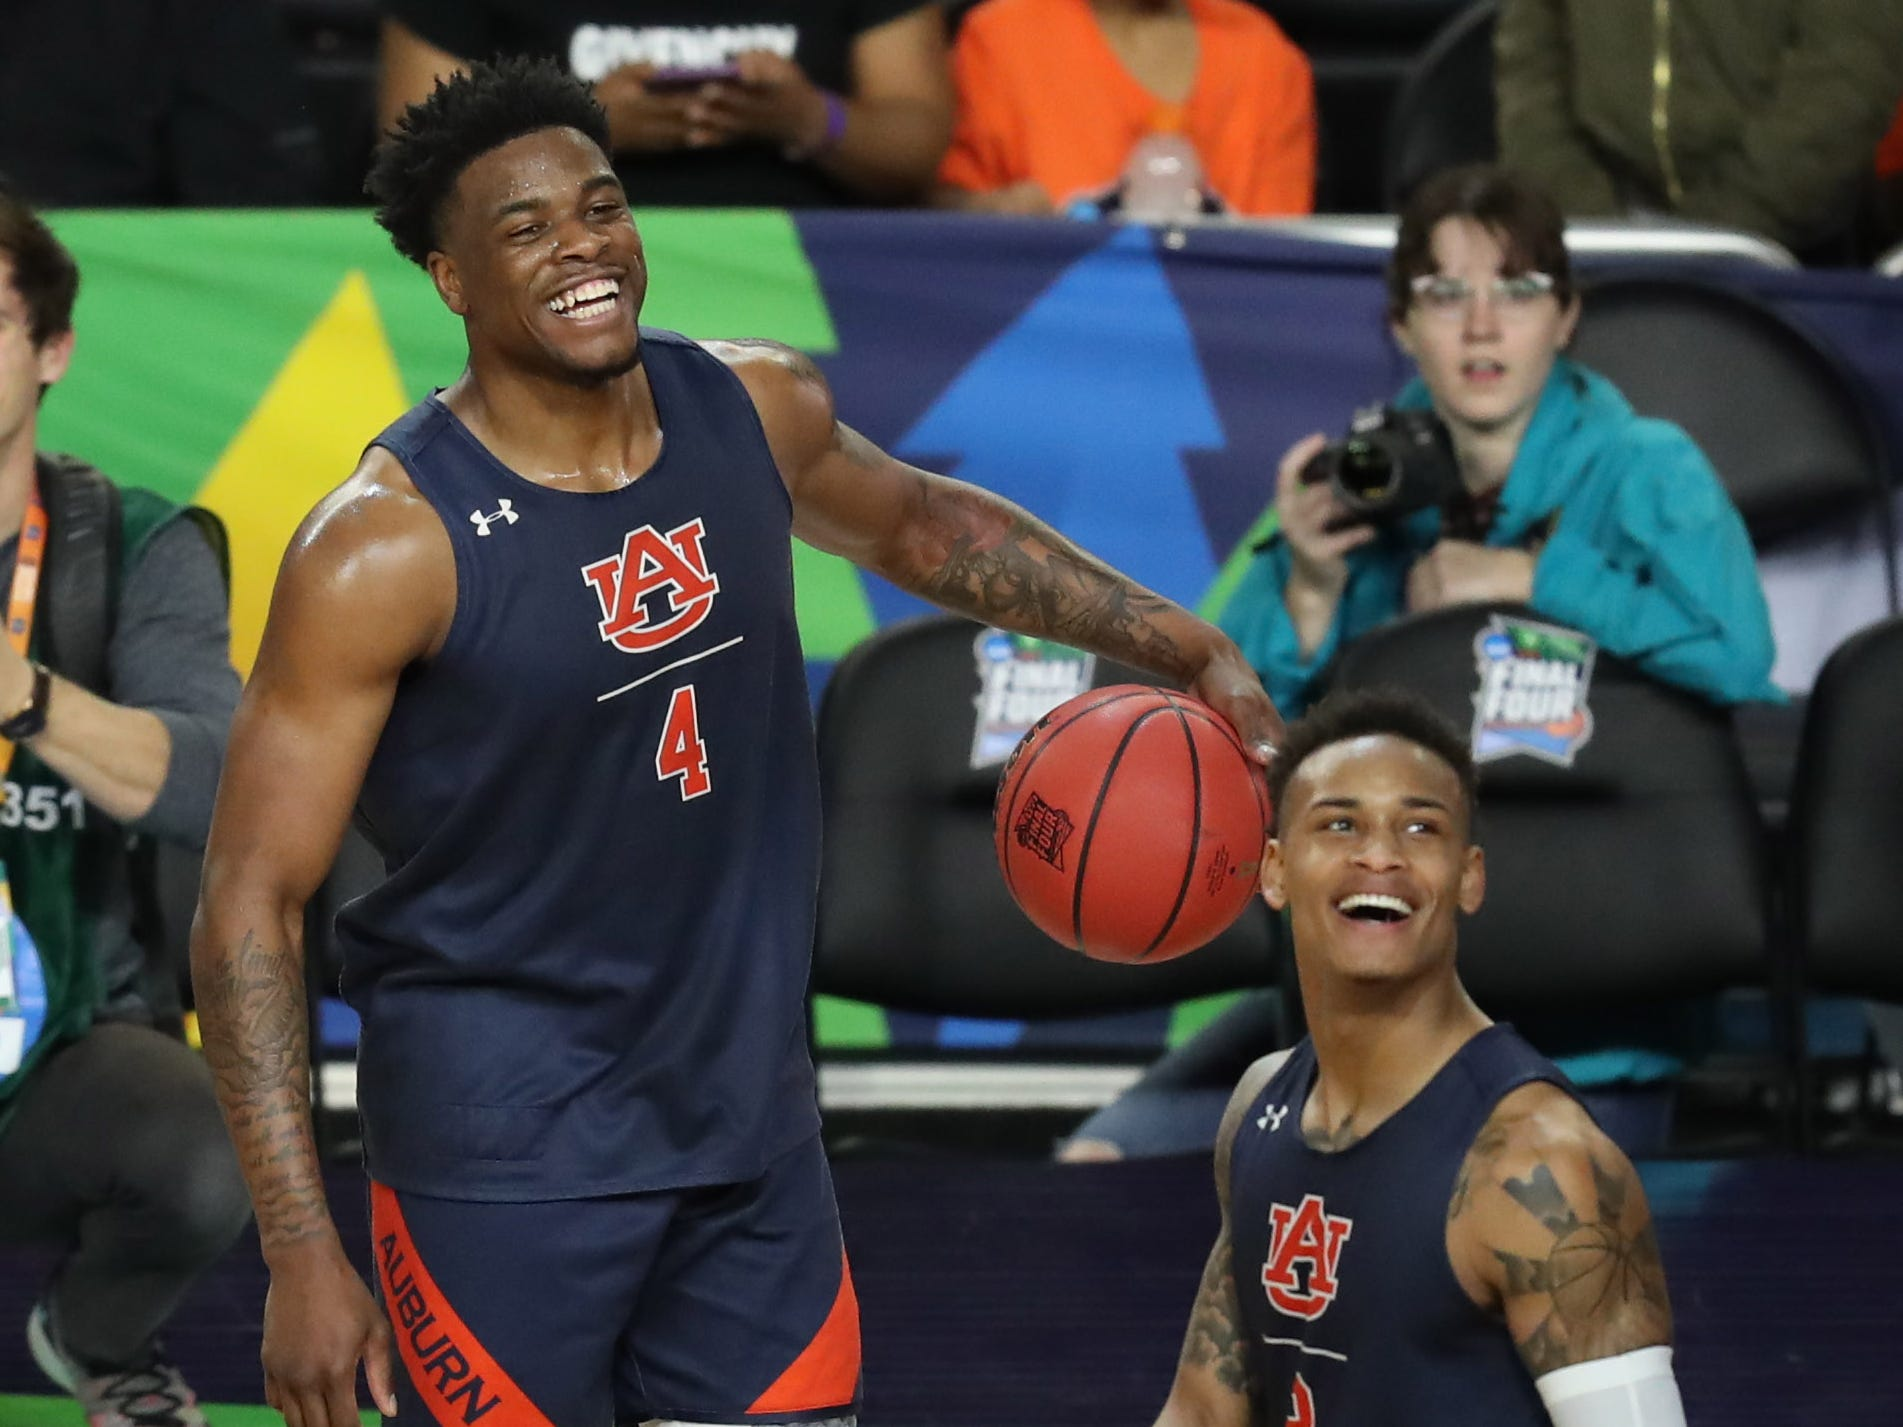 Apr 5, 2019; Minneapolis, MN, USA; Auburn Tigers guard Malik Dunbar (4) and guard Bryce Brown (2) smile during practice for the 2019 men's Final Four at US Bank Stadium. Mandatory Credit: Brace Hemmelgarn-USA TODAY Sports